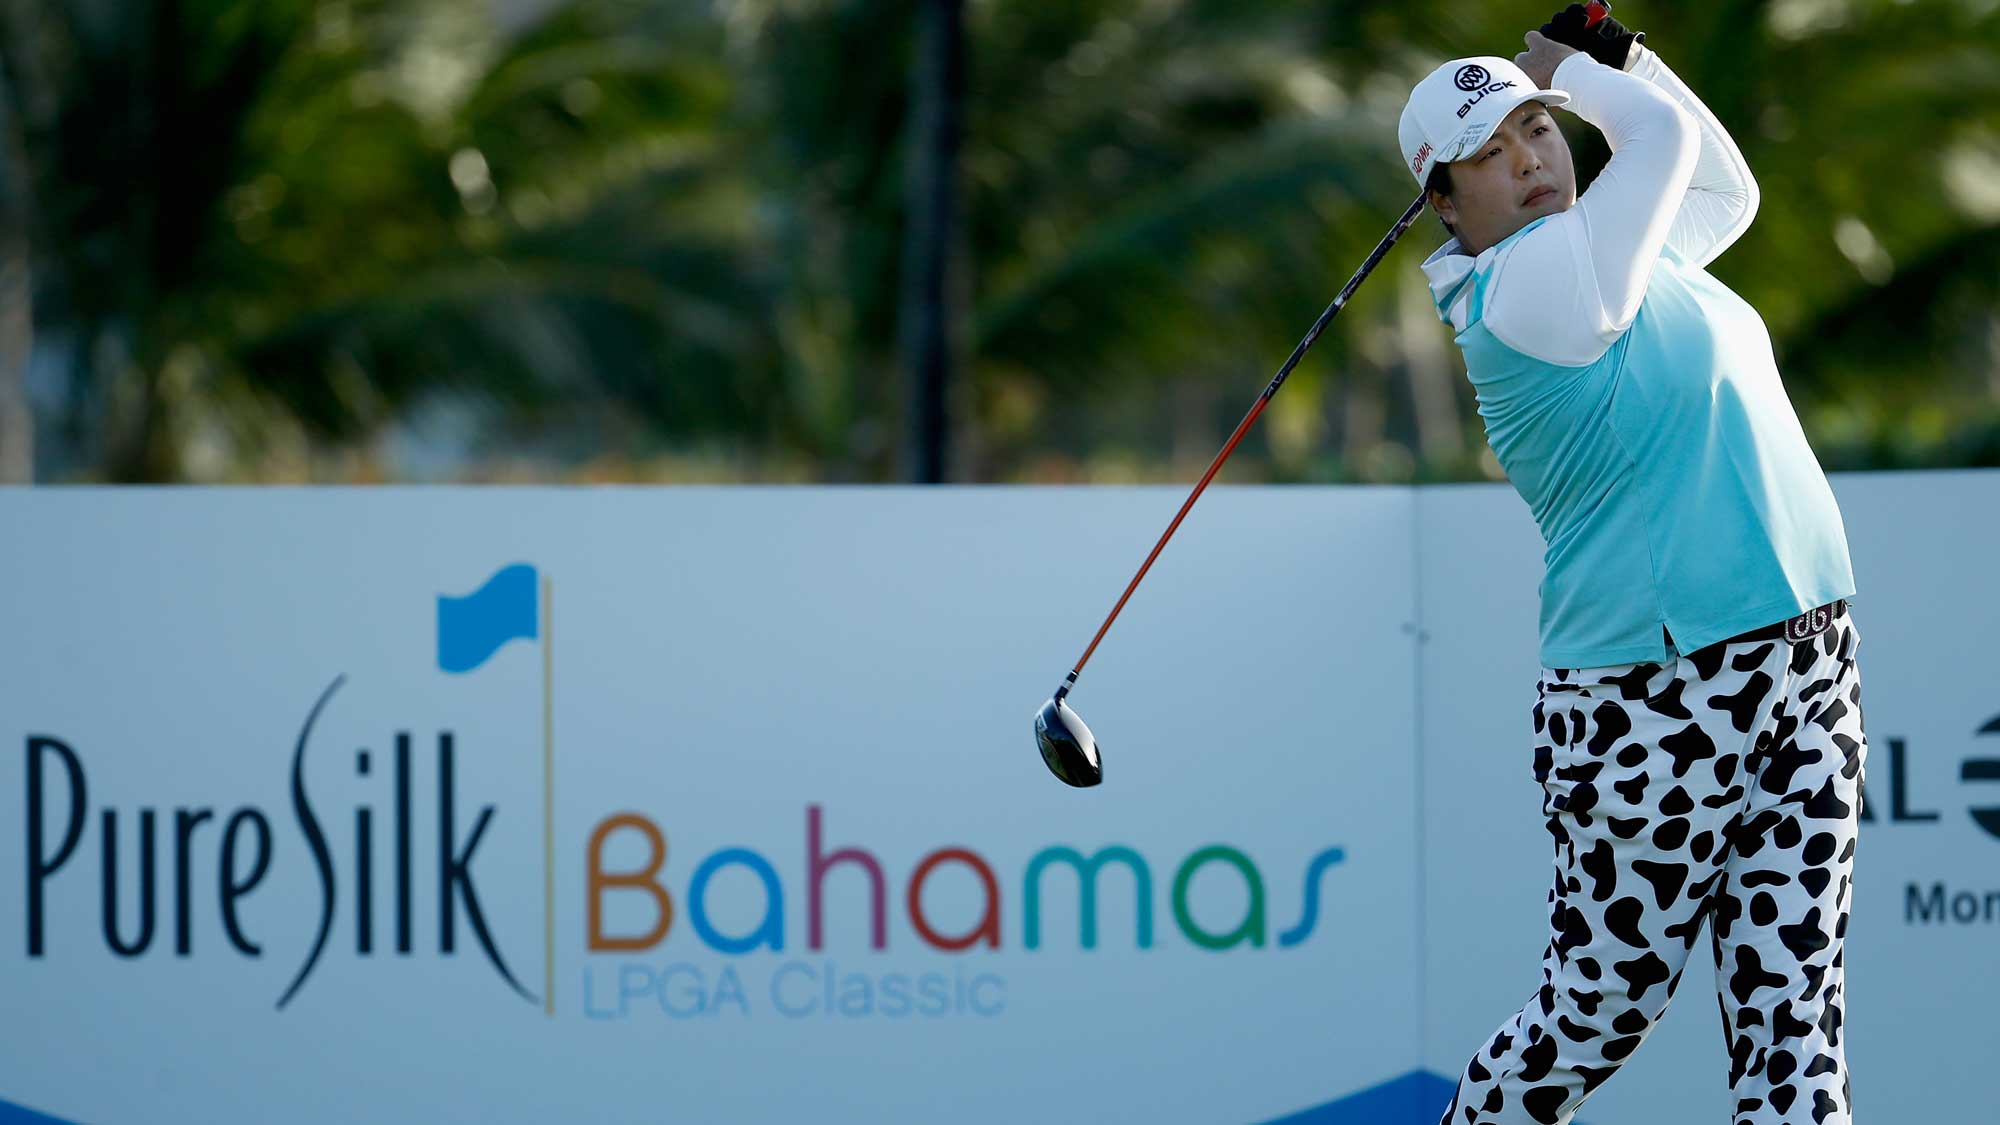 Shanshan Feng of China hits her tee shot on the 15th hole during the second round of the Pure Silk Bahamas LPGA Classic